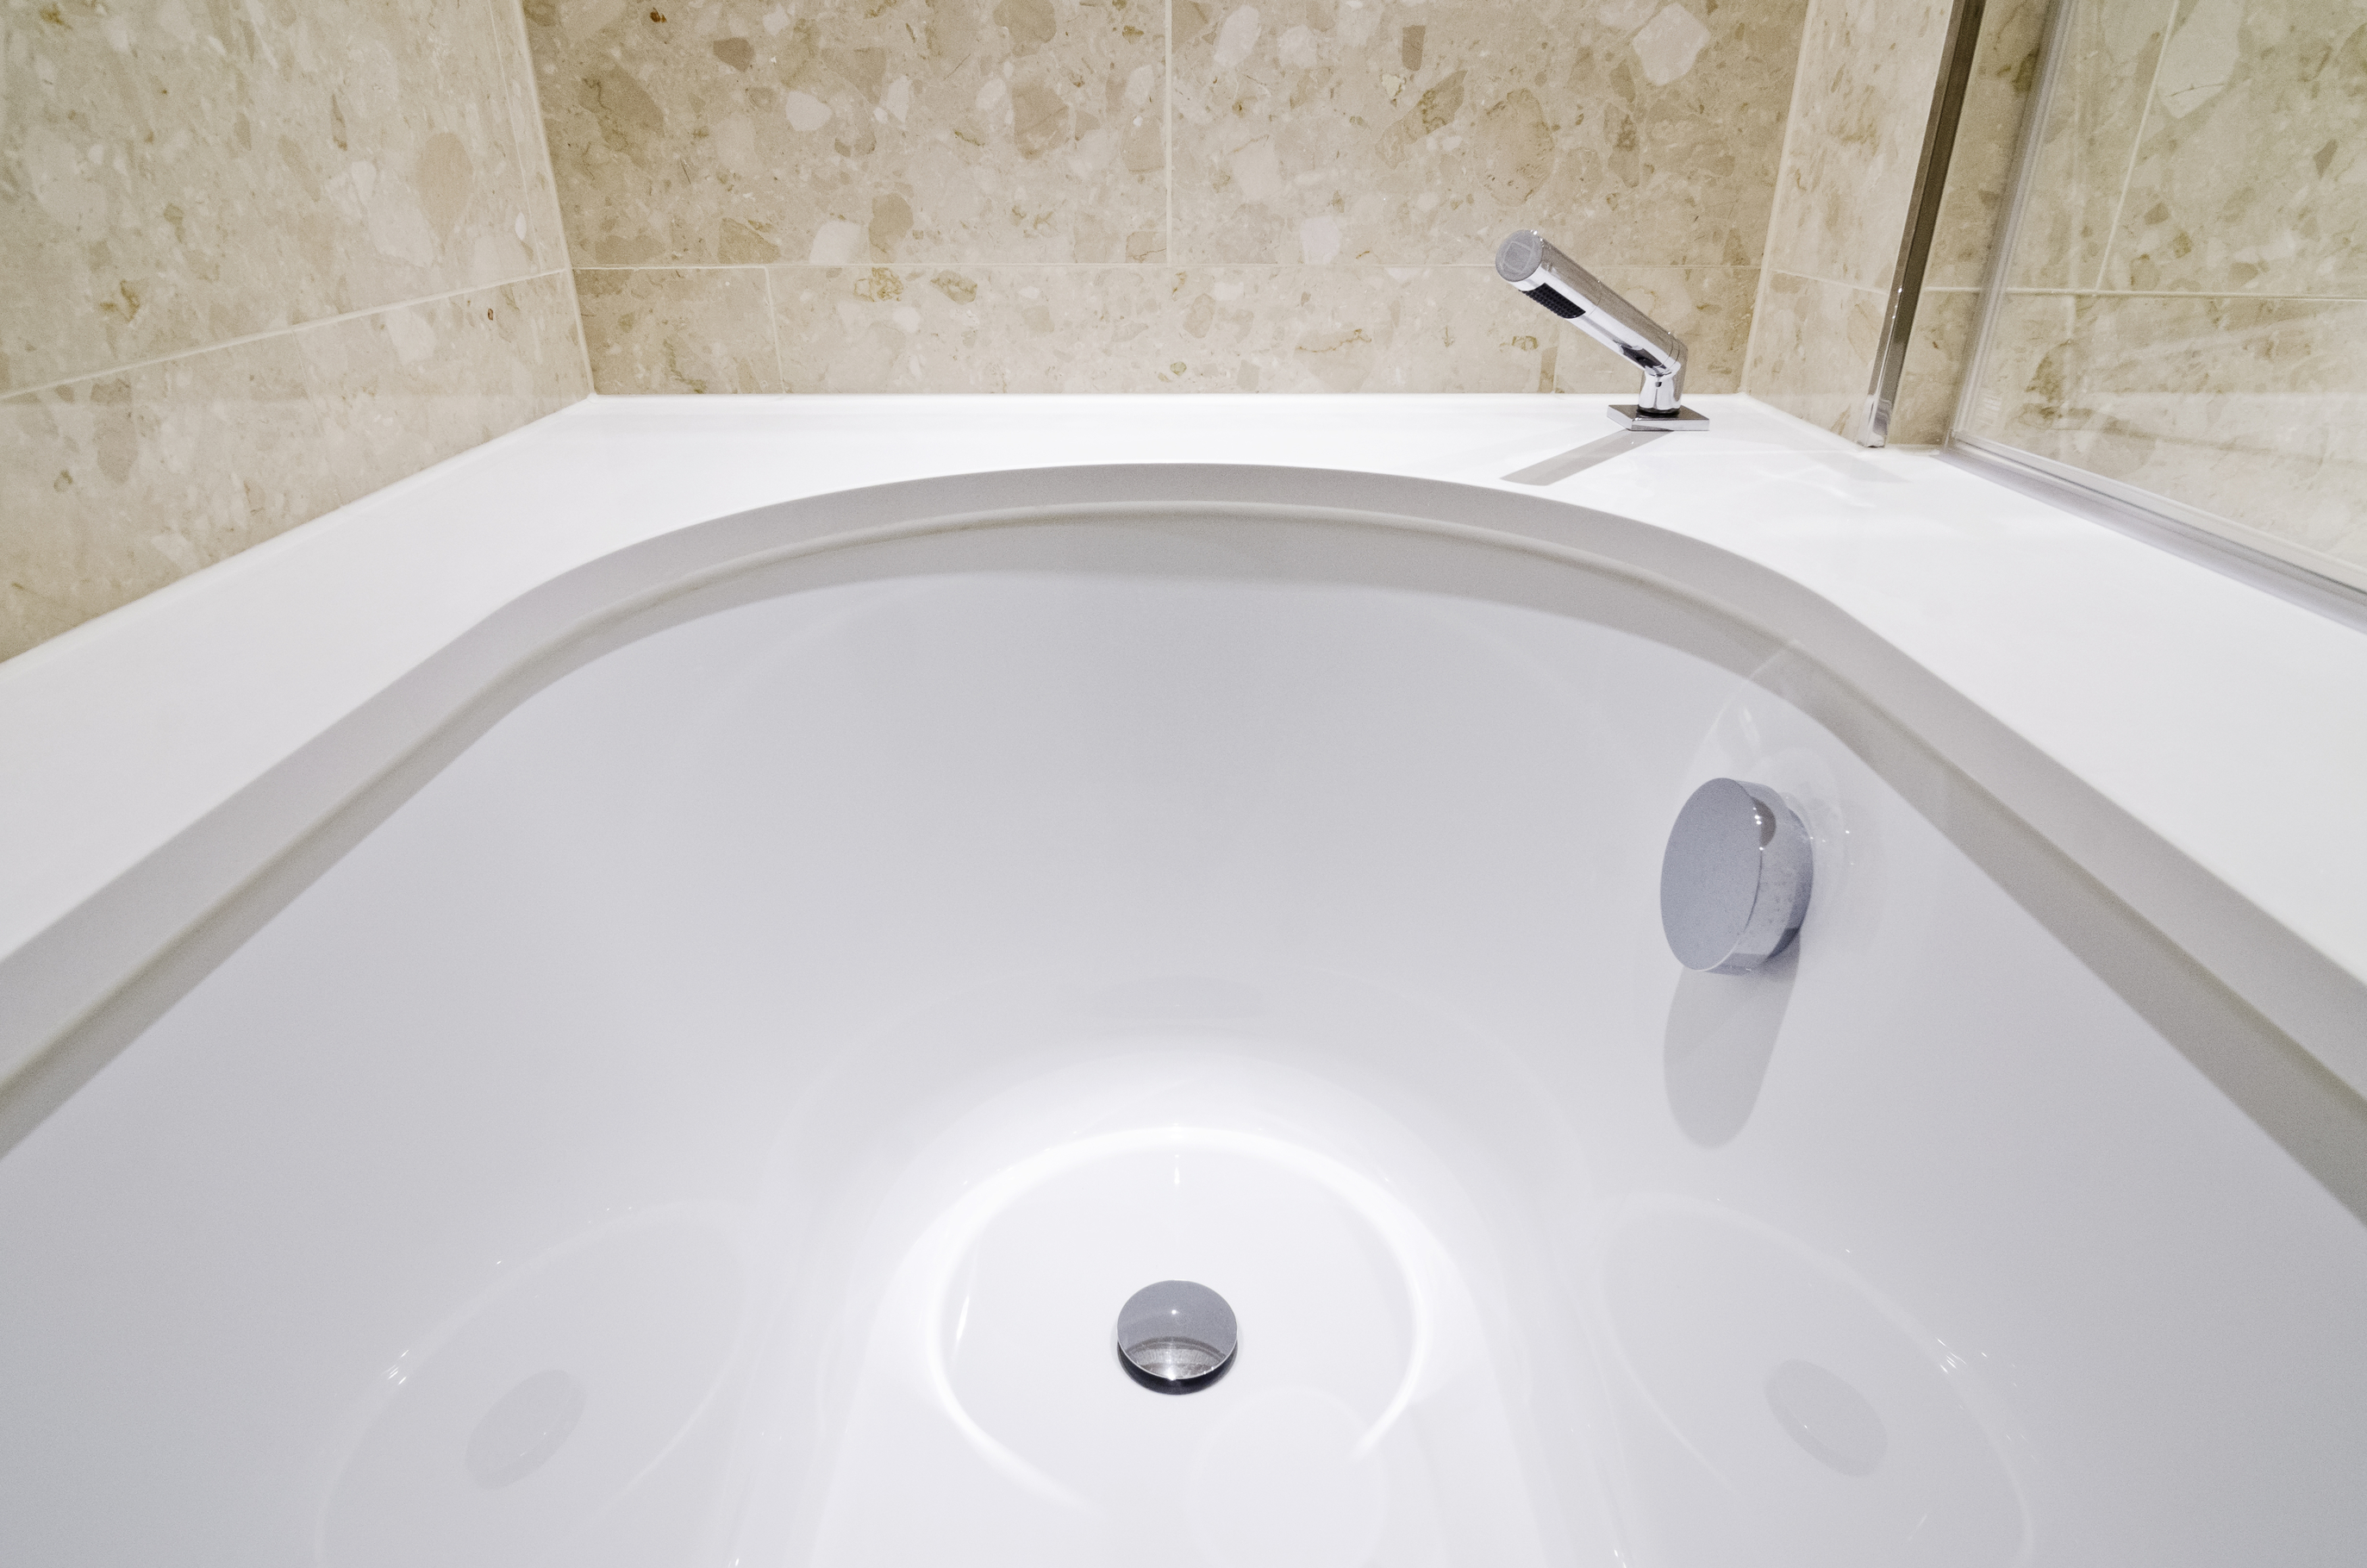 how to clean bath tub